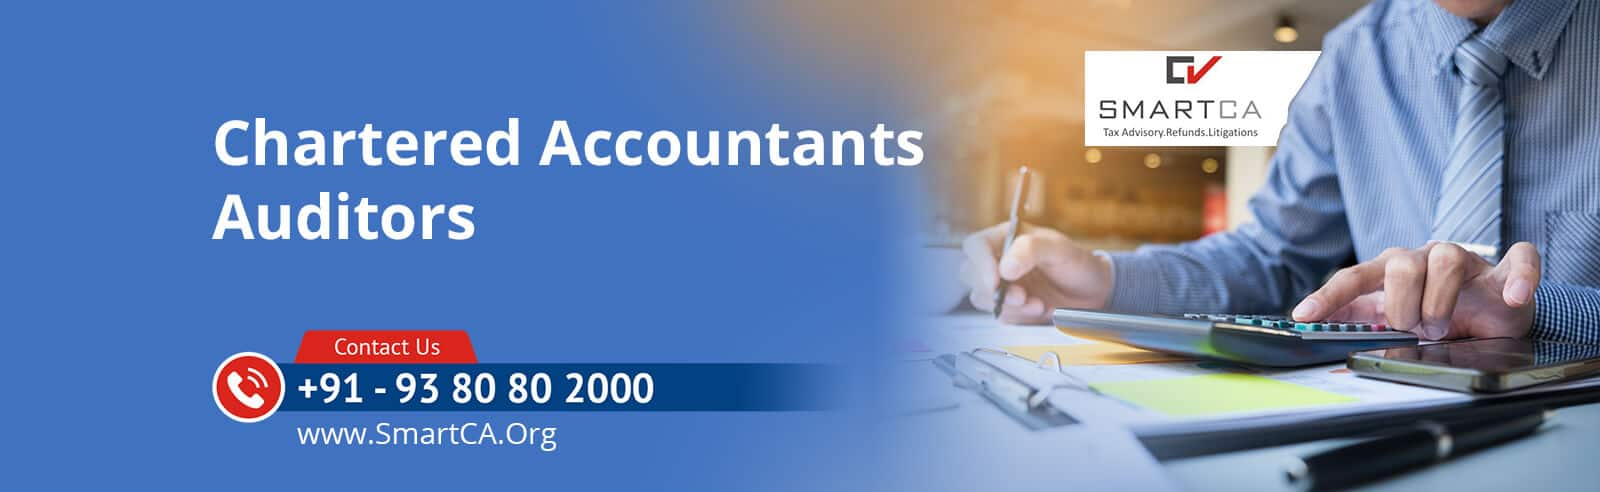 Auditors in Chennai Peravallur